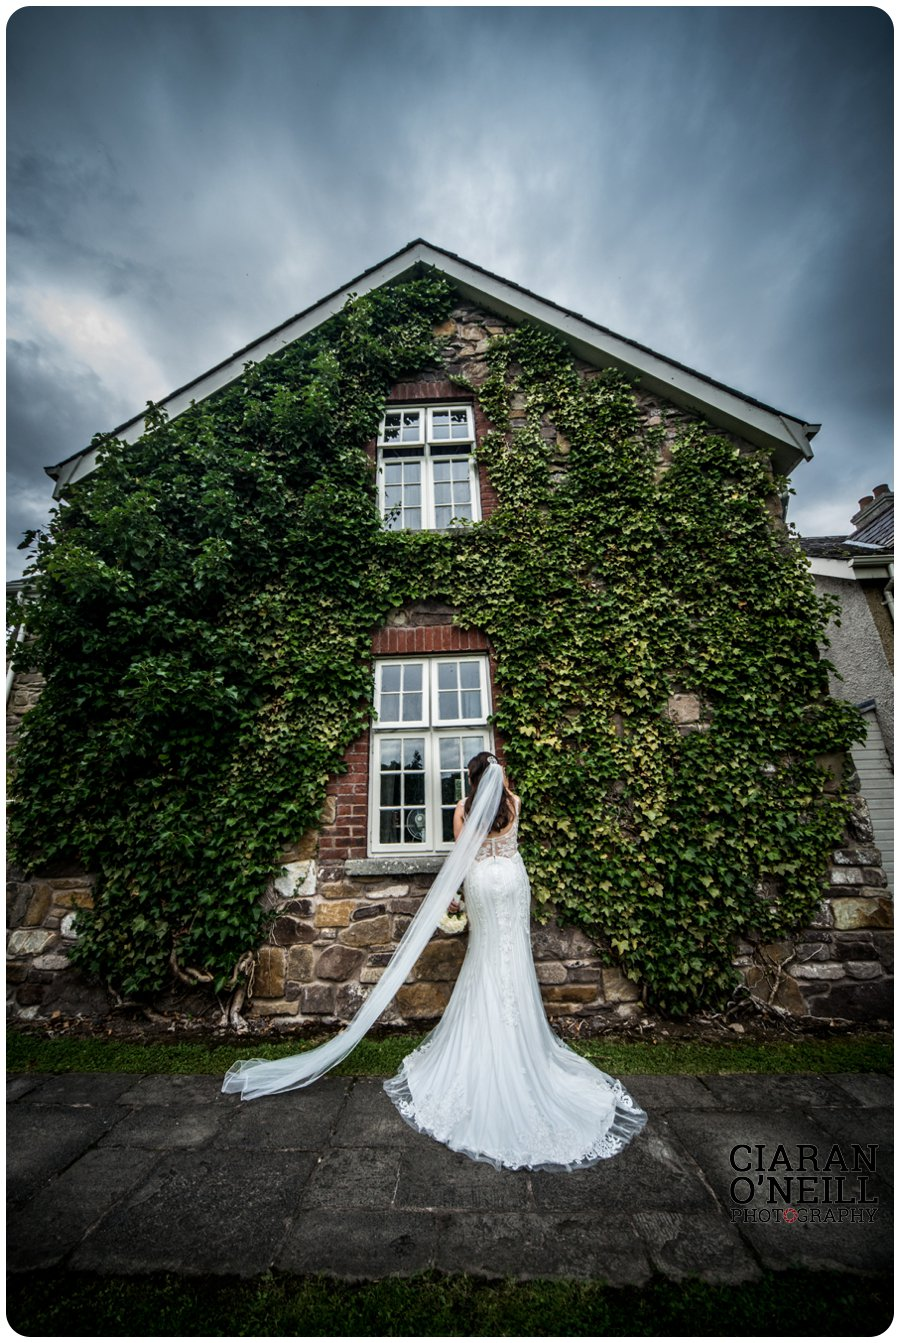 Kirsty & Chris's wedding at Lusty Beg Island by Ciaran O'Neill Photography 19